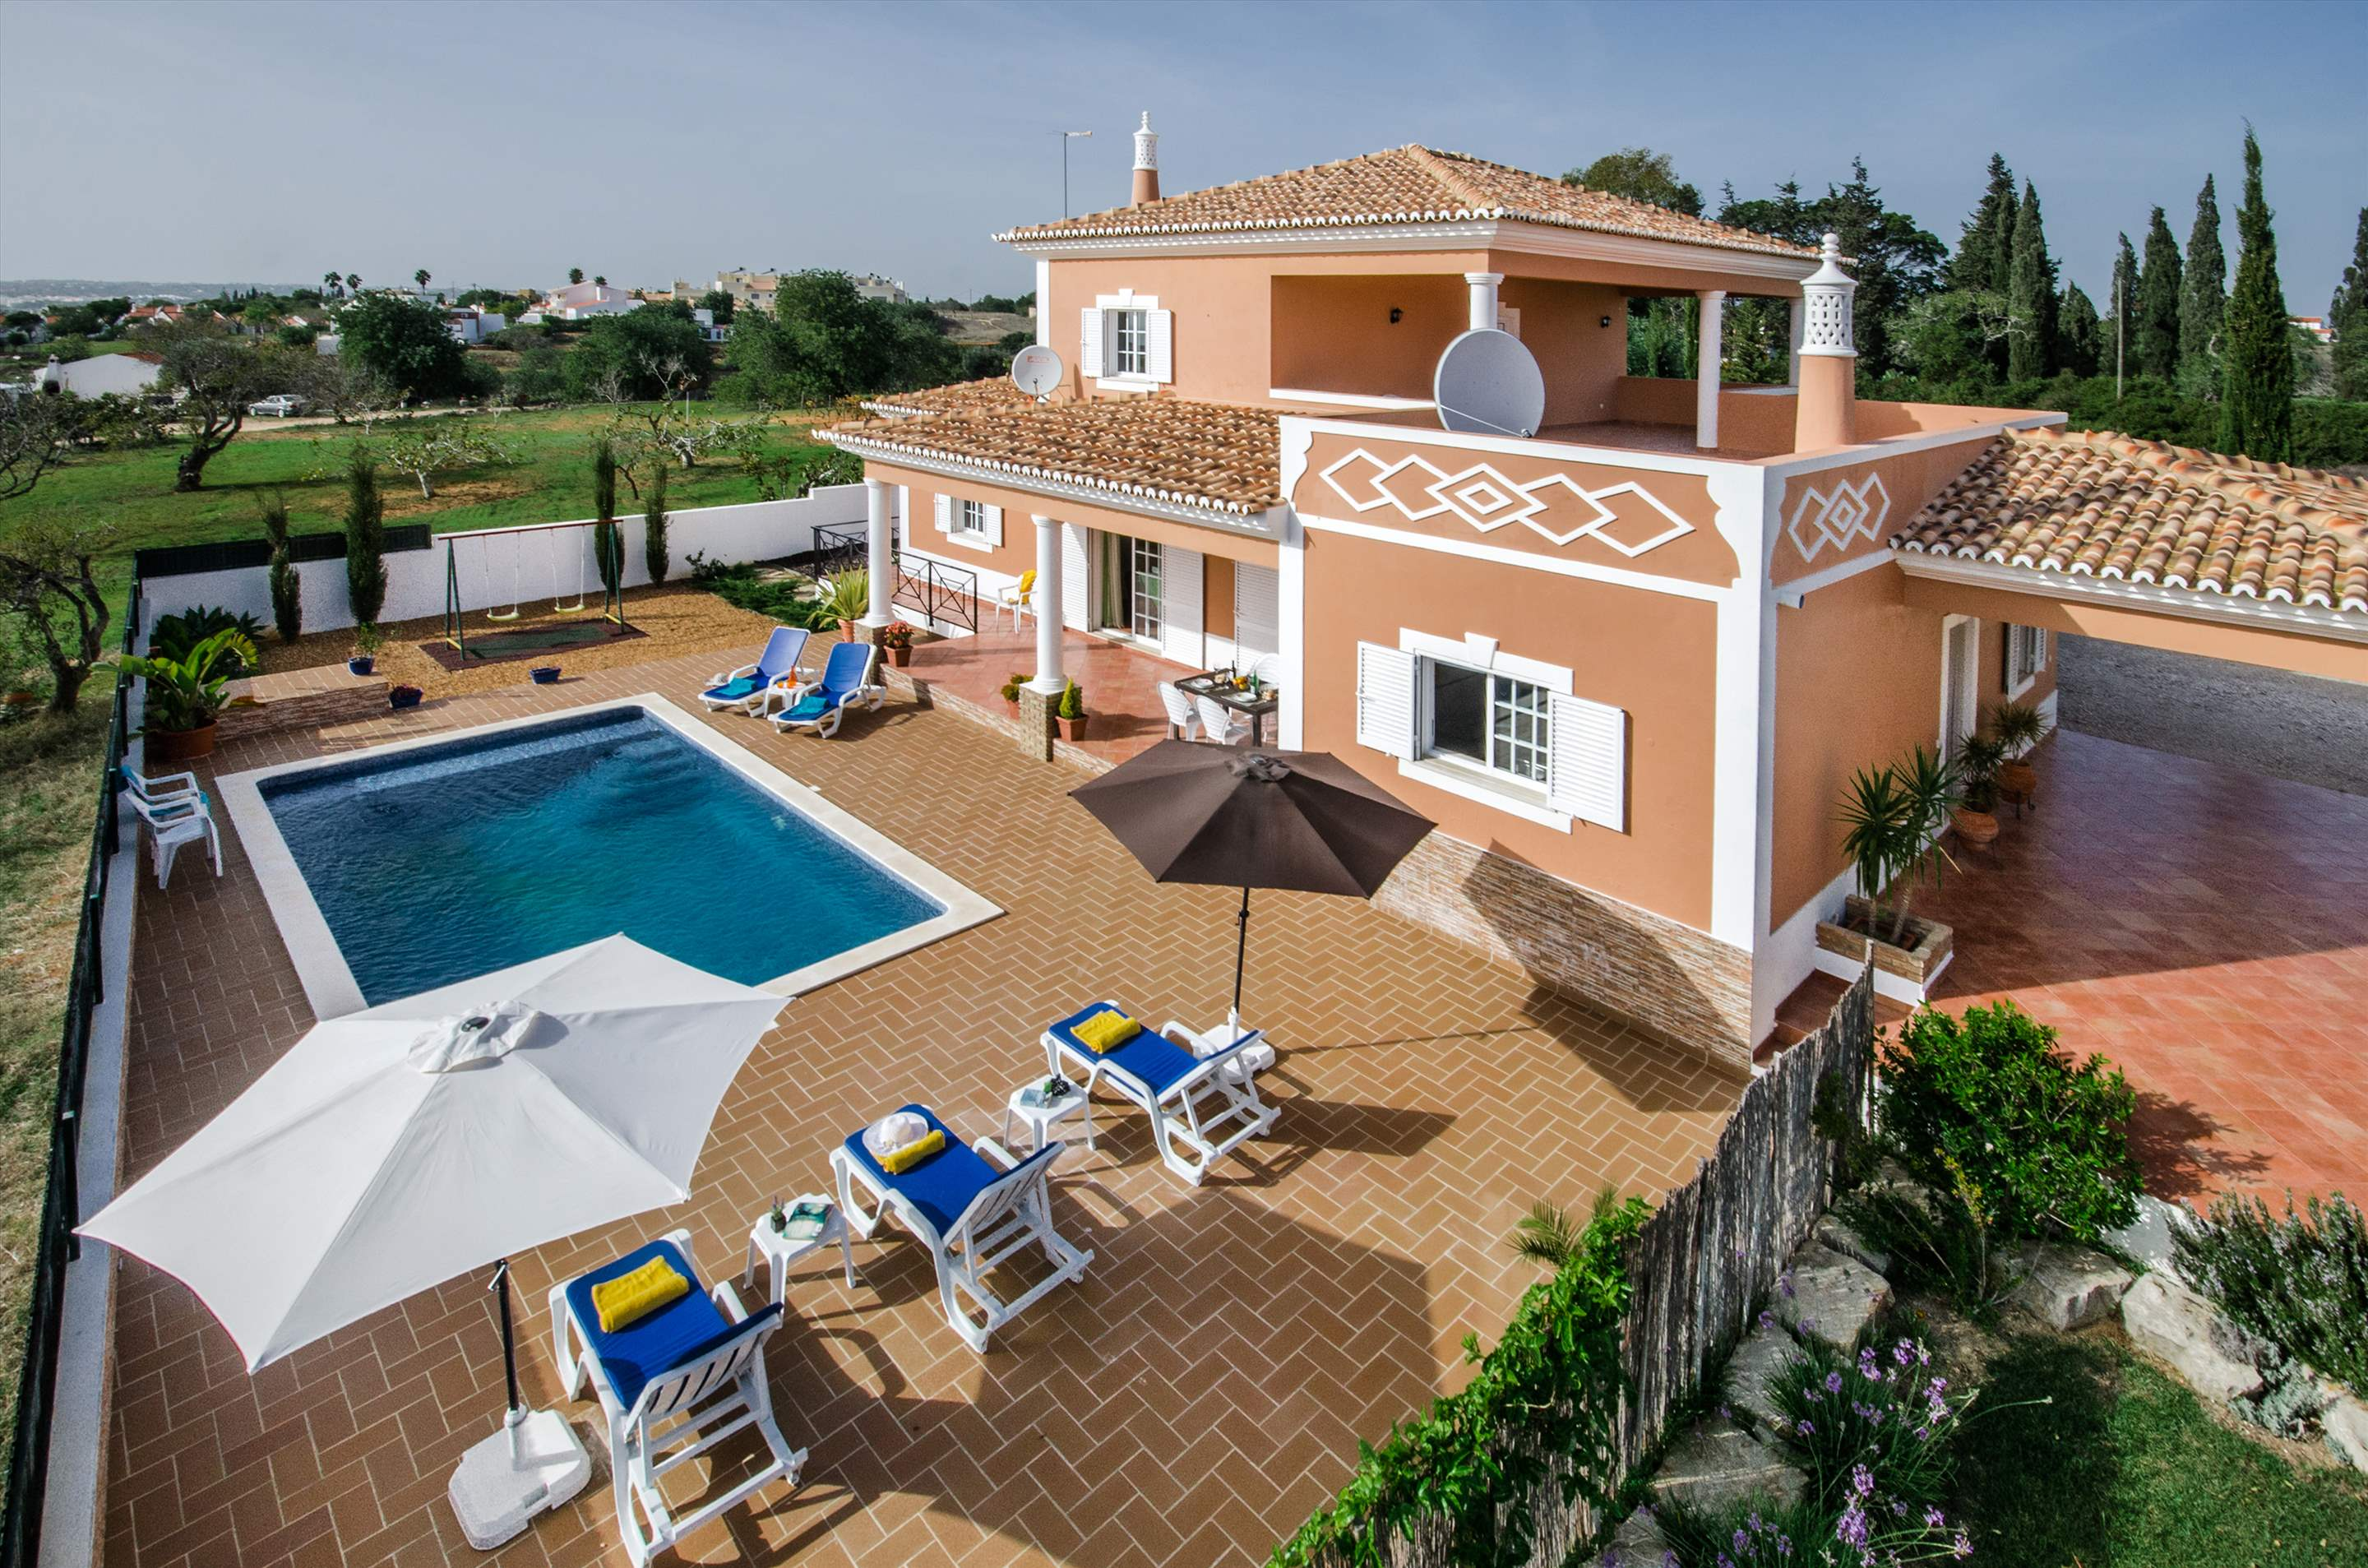 Casa Laura, 3 bedroom villa in Gale, Vale da Parra and Guia, Algarve Photo #2